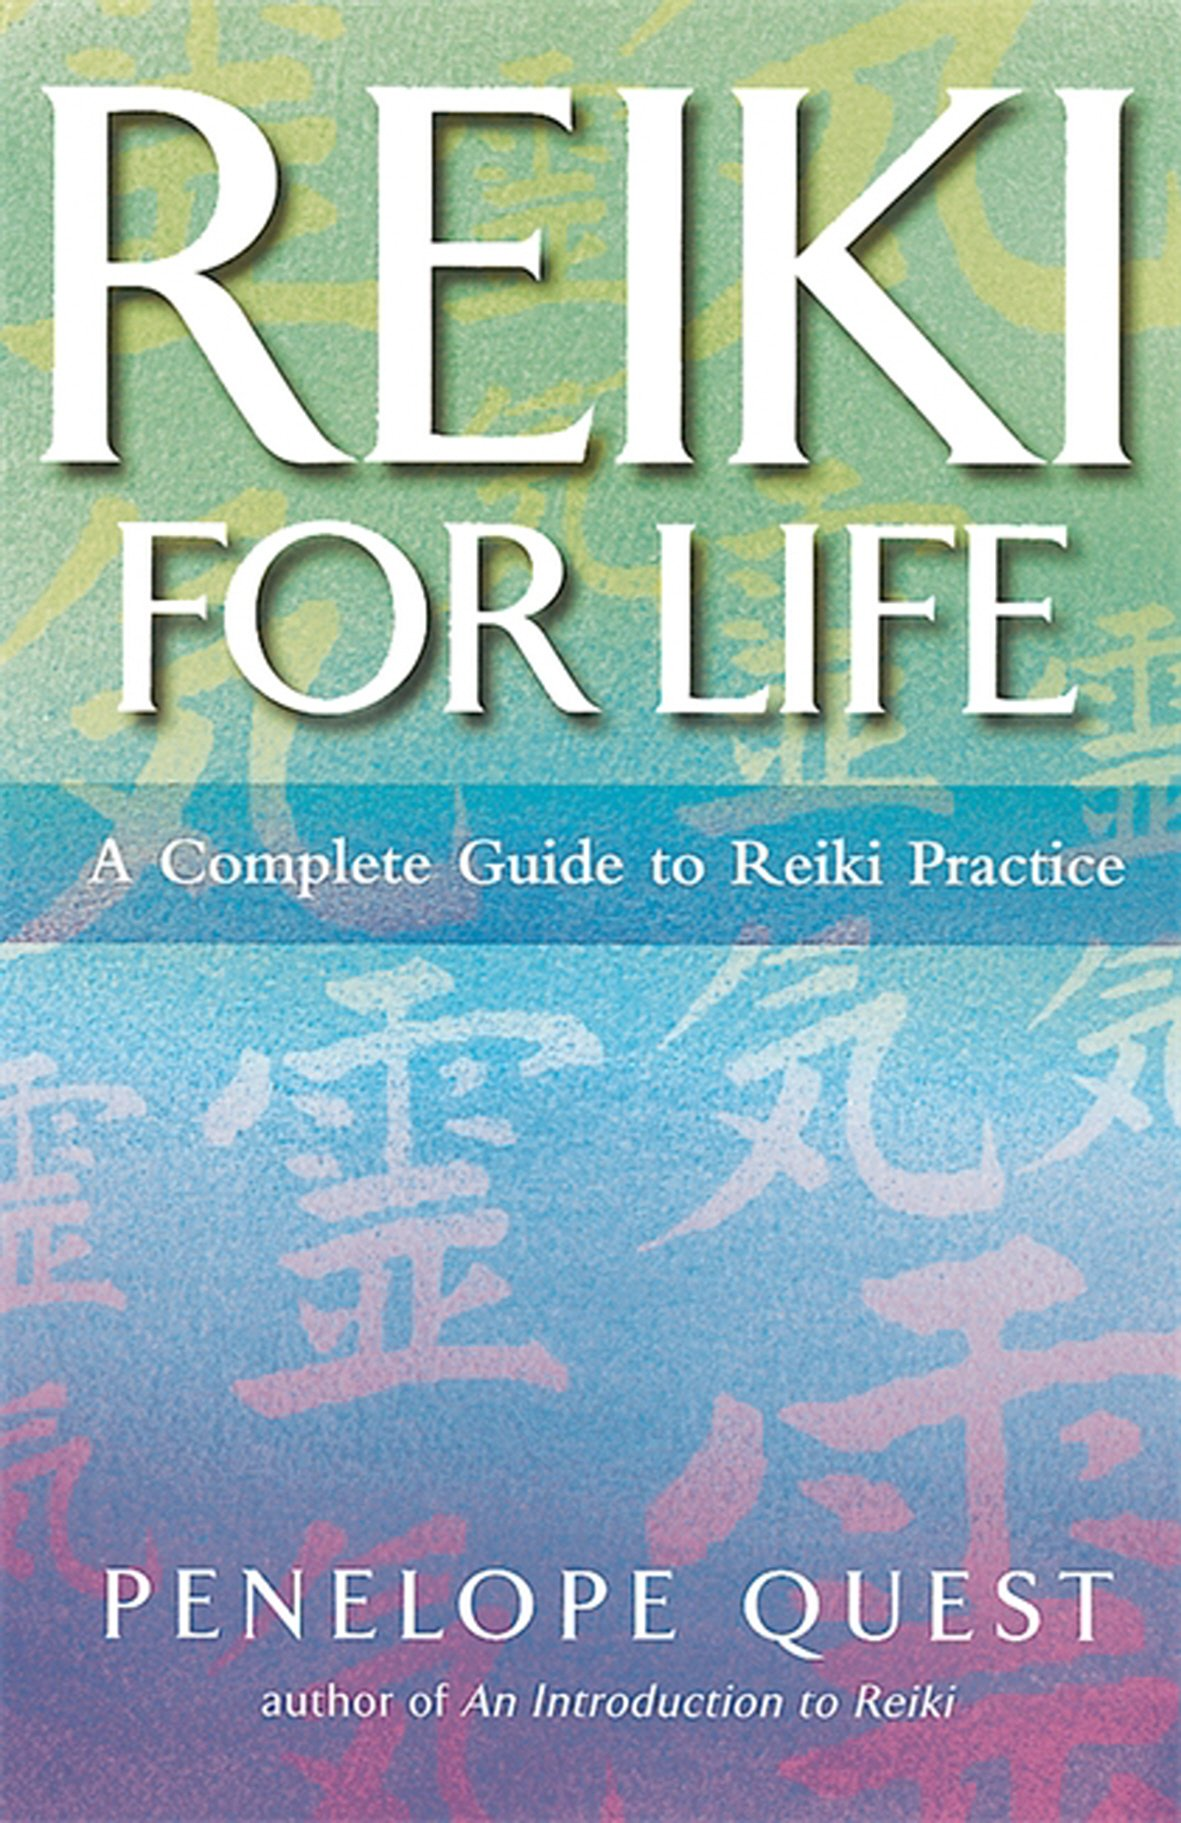 Download Reiki for Life: The Complete Guide to Reiki Practice for Levels 1, 2, & 3 ebook